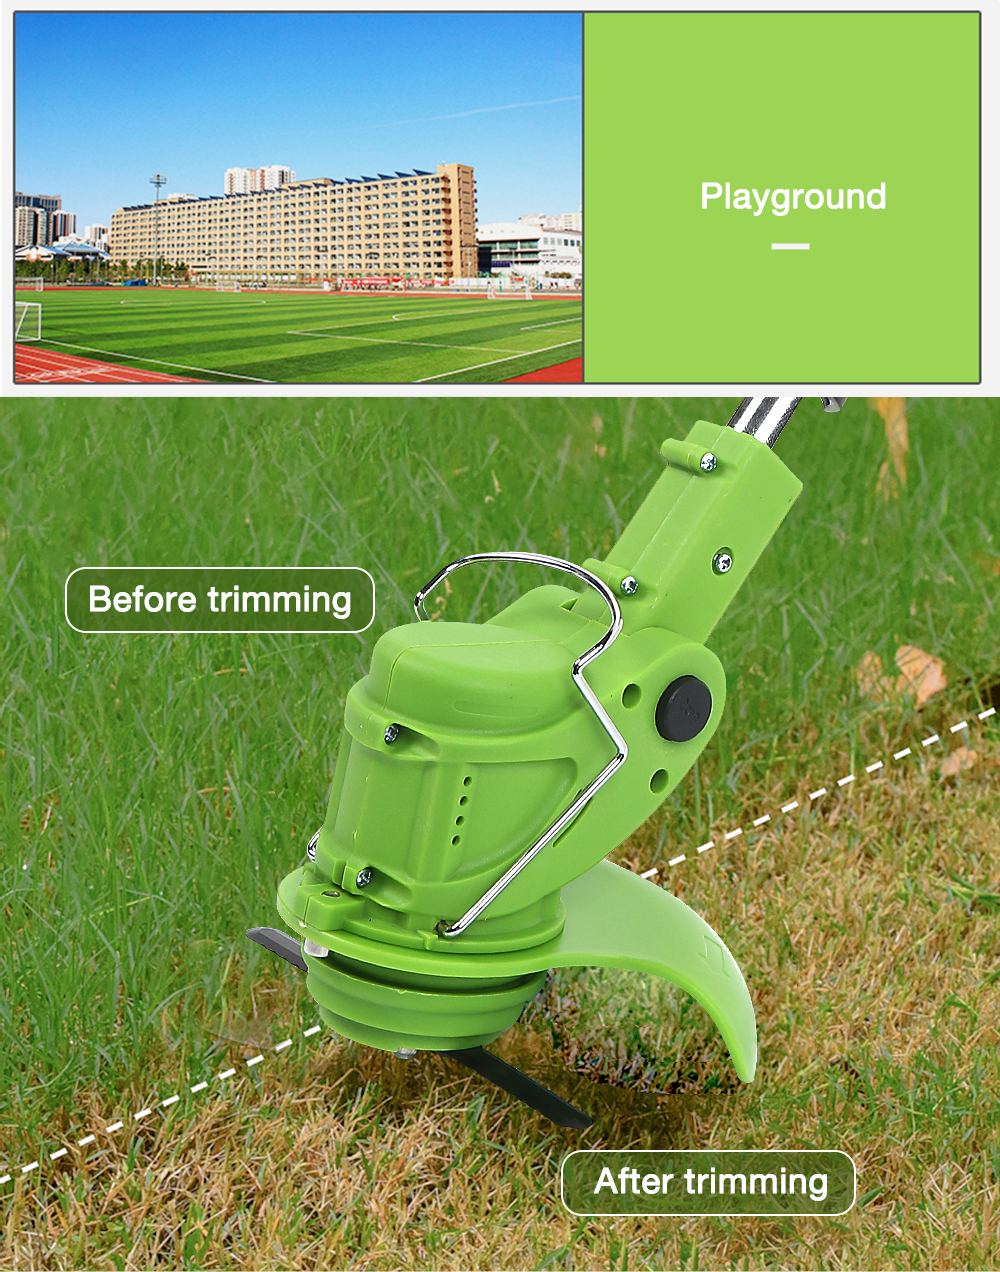 Cordless Grass Trimmer Lawn Mower with Adjustable Handle- Green EU Plug